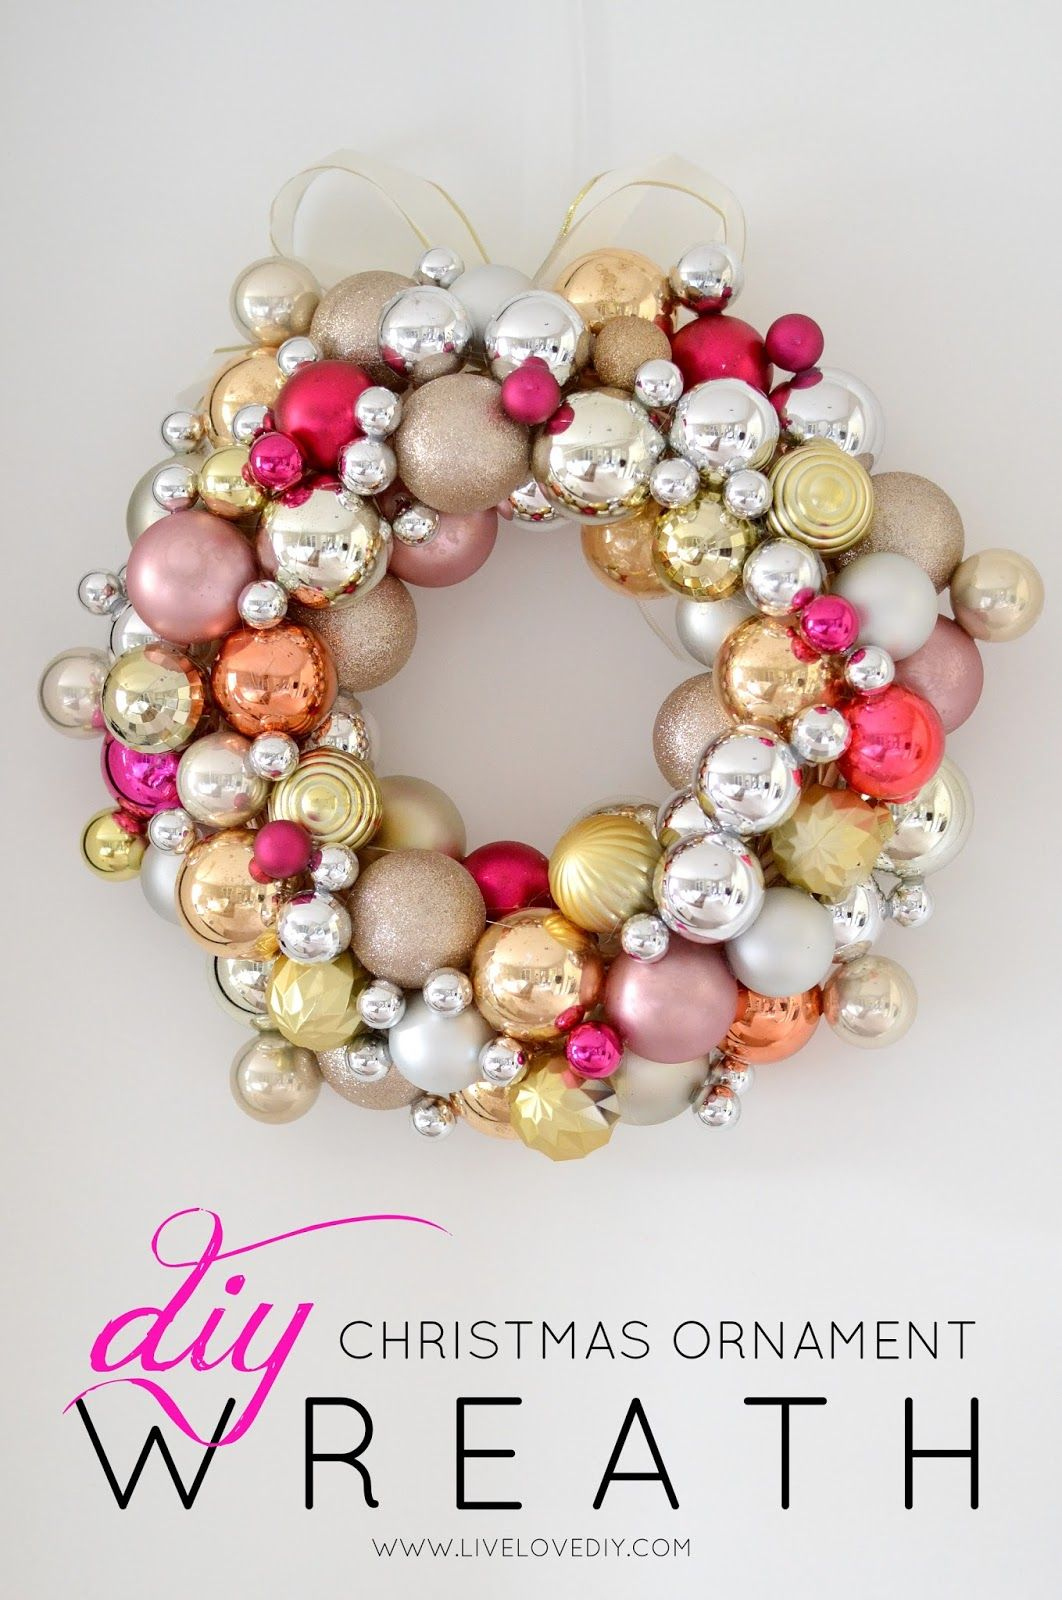 Christmas wreath ornaments - How To Make A Christmas Ornament Wreath